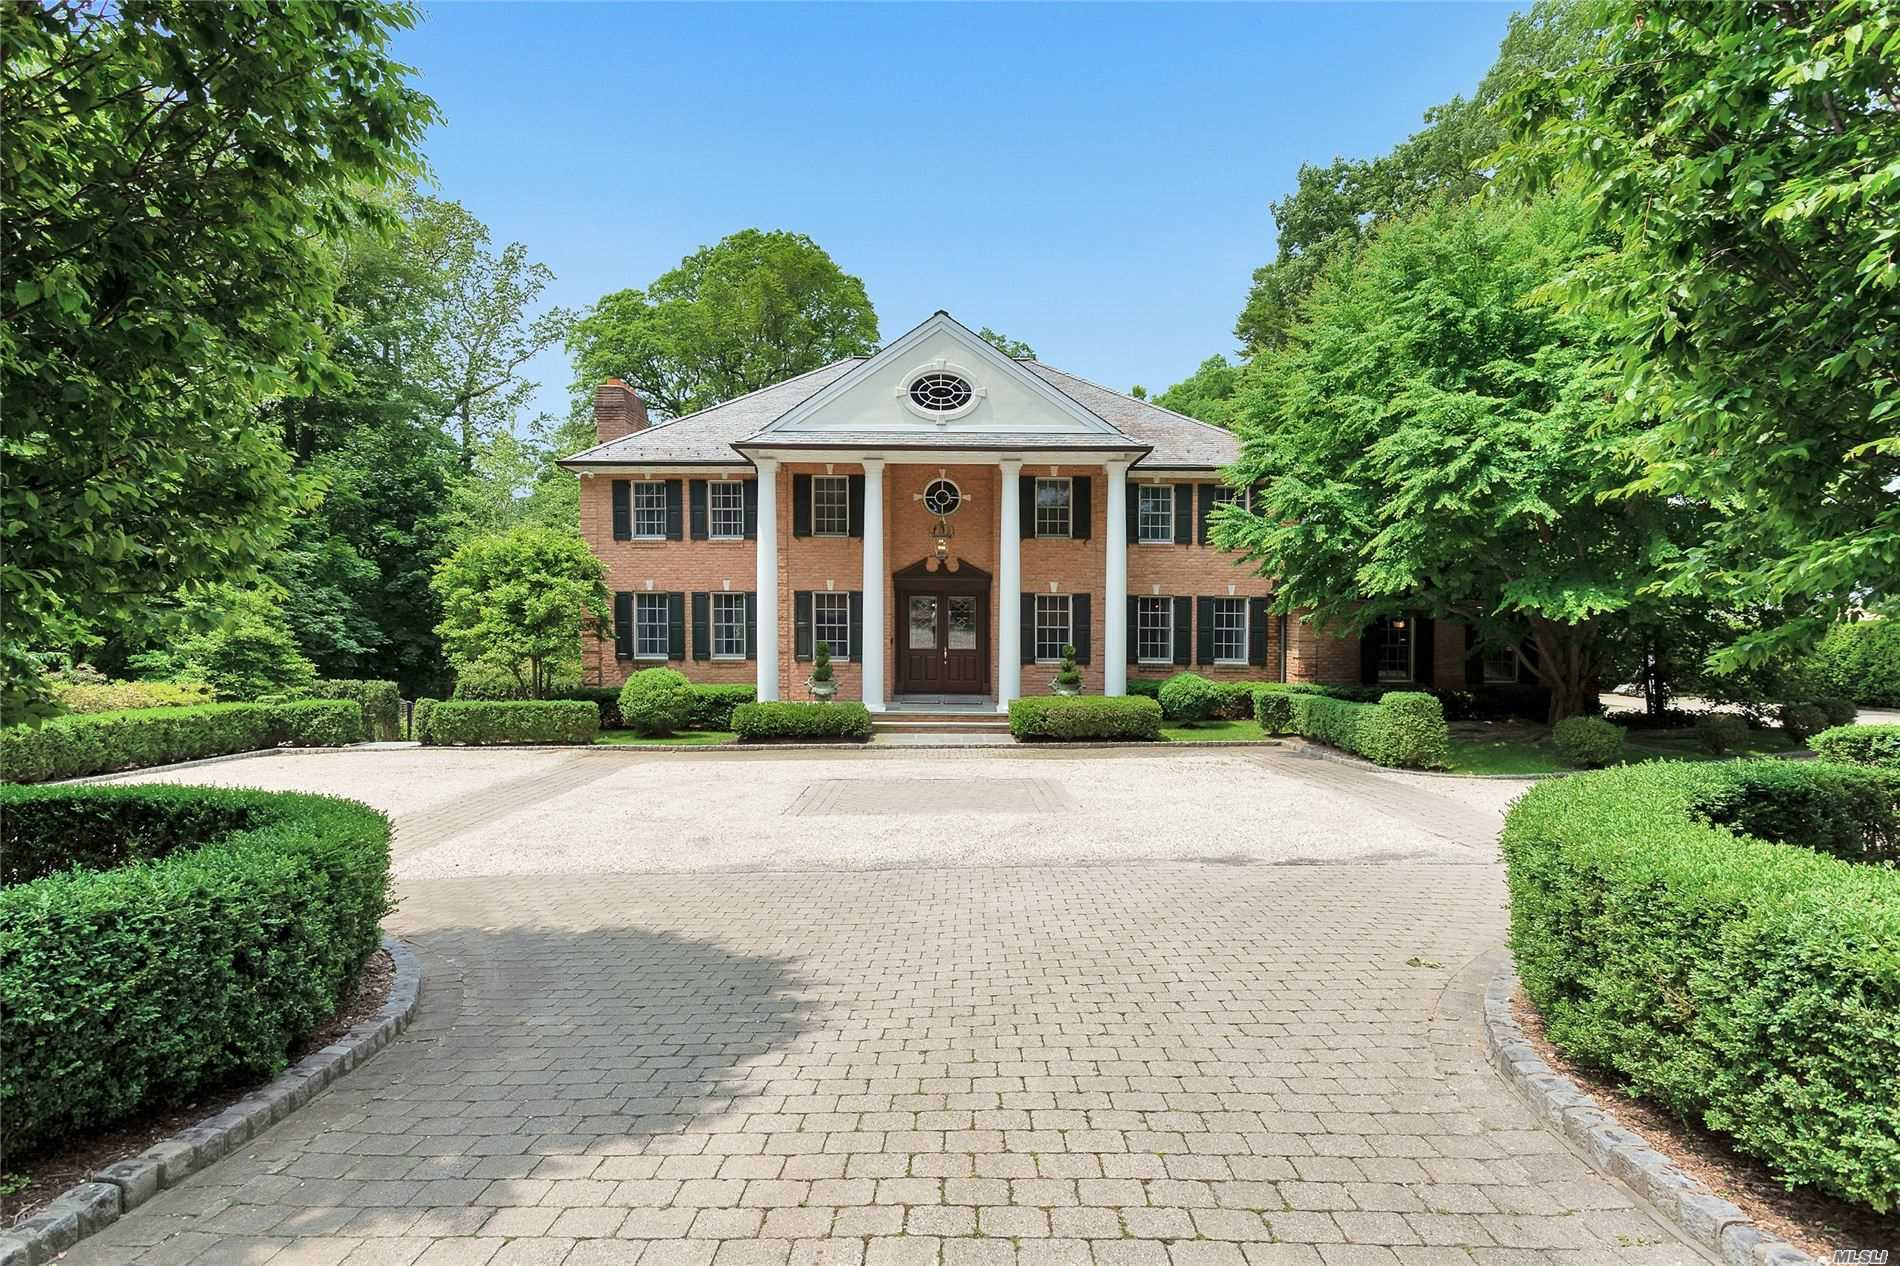 Elegant 5 bedroom Brick CH Colonial begins at the impressive entry foyer leading to stunning entertaining spaces with approx 5400 sq ft of luxury on 1 acre of lush property in Flower Hill. Stylish & spacious Entertaining rooms include LR w fpl, Gourmet Rutt kitchen w large center island , two dishwashers, walk in pantry,  sun filled breakfast room which overlooks the tranquil property,  patio & organic gardens,  The kitchen flows into a large Family Room w limestone fireplace, Formal Dining Room , den/office , An impressive & Grand Master Suite with fireplace, spa like master bath ,  walk in closets & Sitting Rm/Office/Nursery will be a favorite.  Beautiful architectural details & design make this home truly exceptional in every way & one not to be missed.